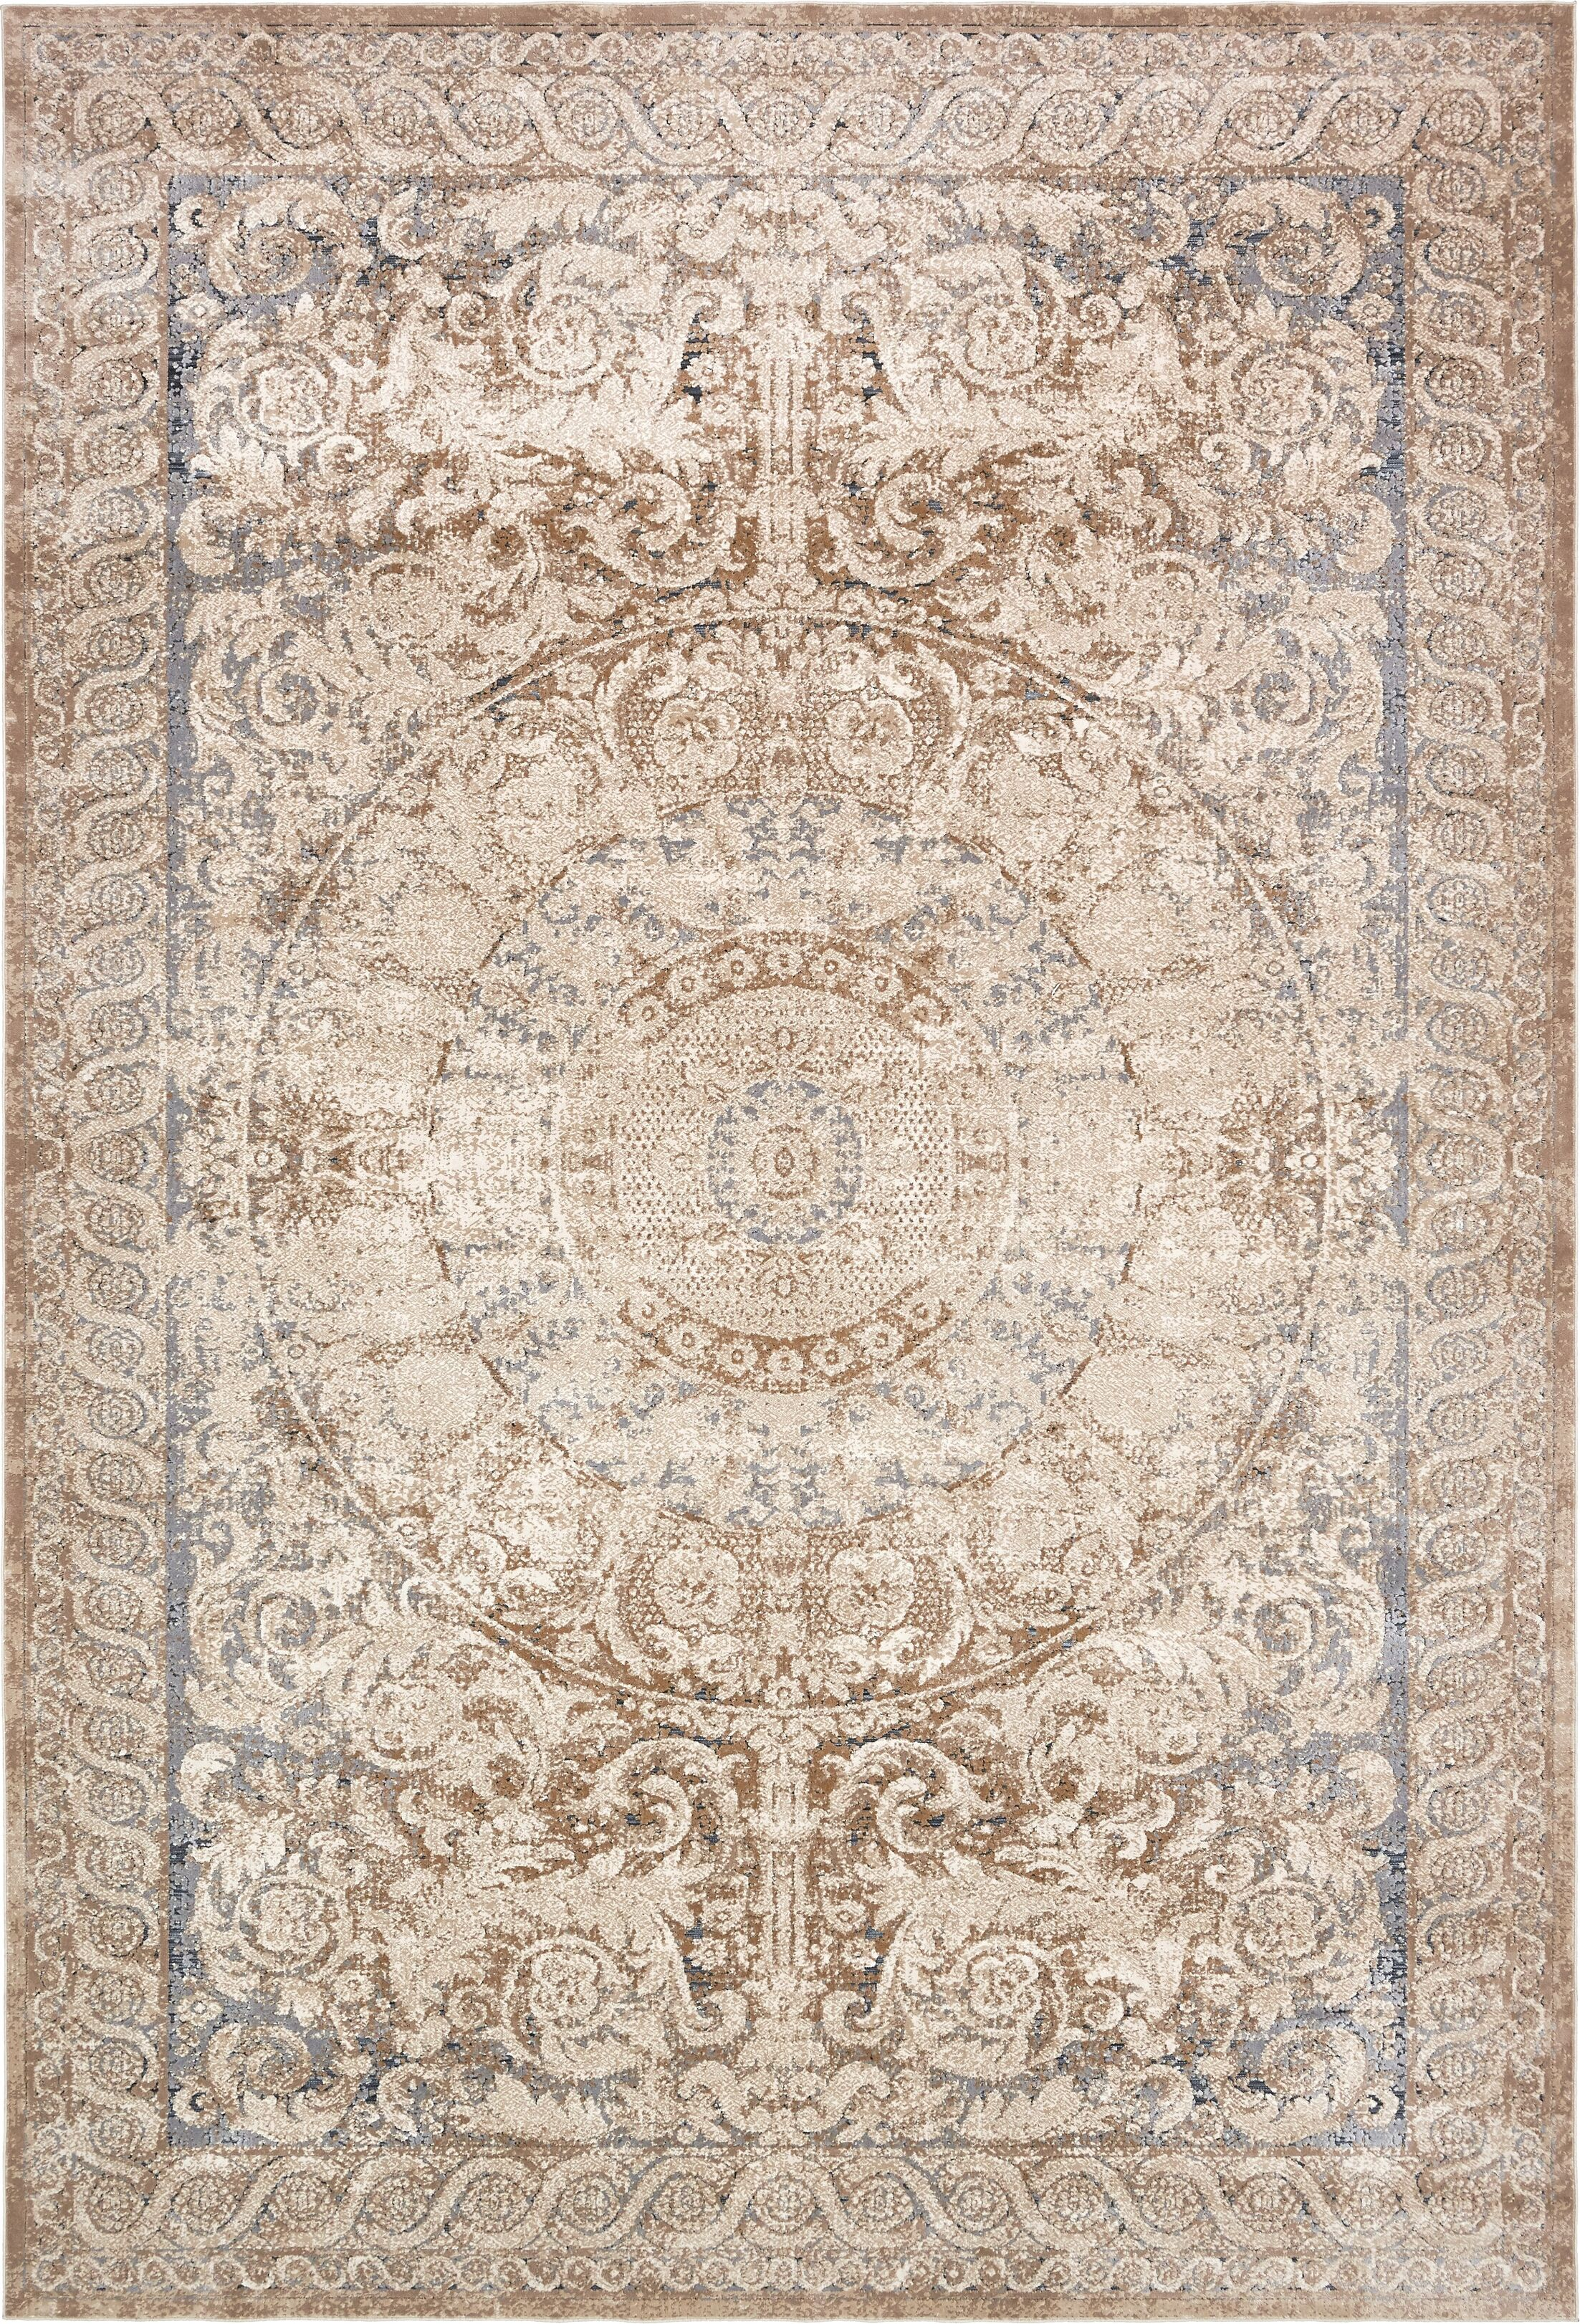 Abbeville Beige Area Rug Rug Size: Rectangle 10' x 14'5